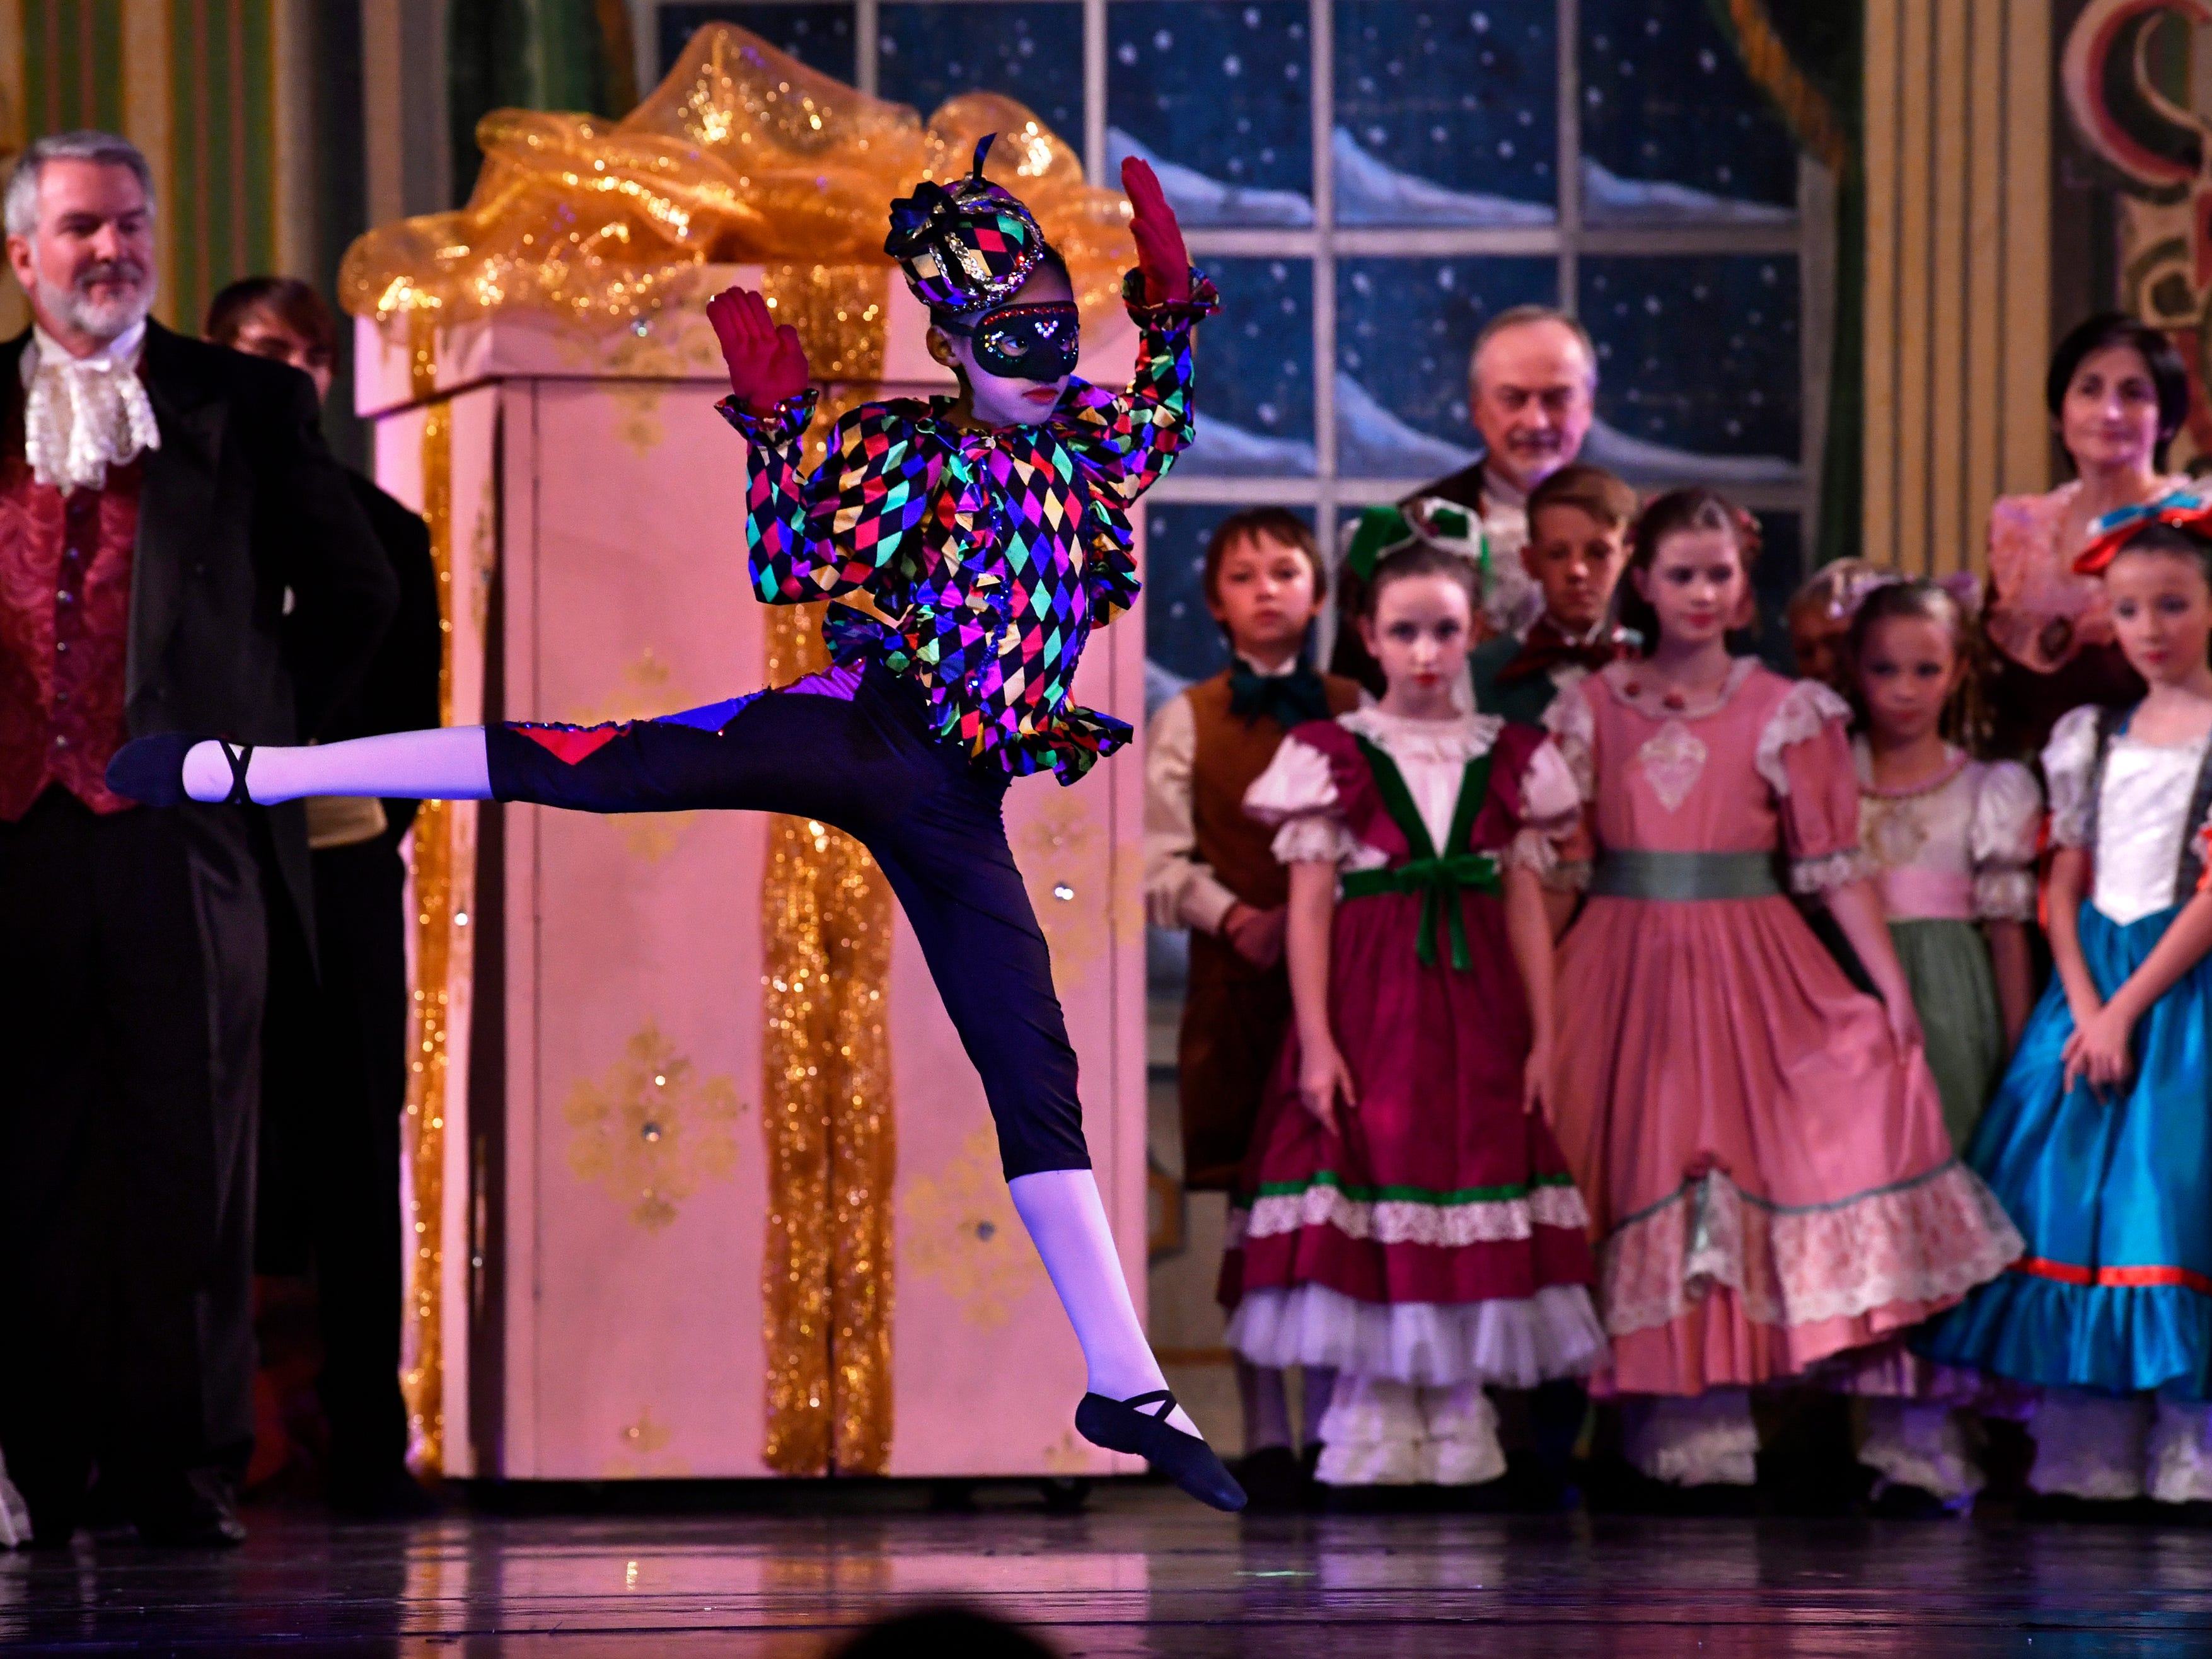 Tia Barnes performs as a mechanical doll during the Party Scene in the final dress rehearsal of The Nutcracker Thursday Nov. 15, 2018. This was the 31st year for the Abilene Ballet Theatre production, held at the Paramount Theatre.